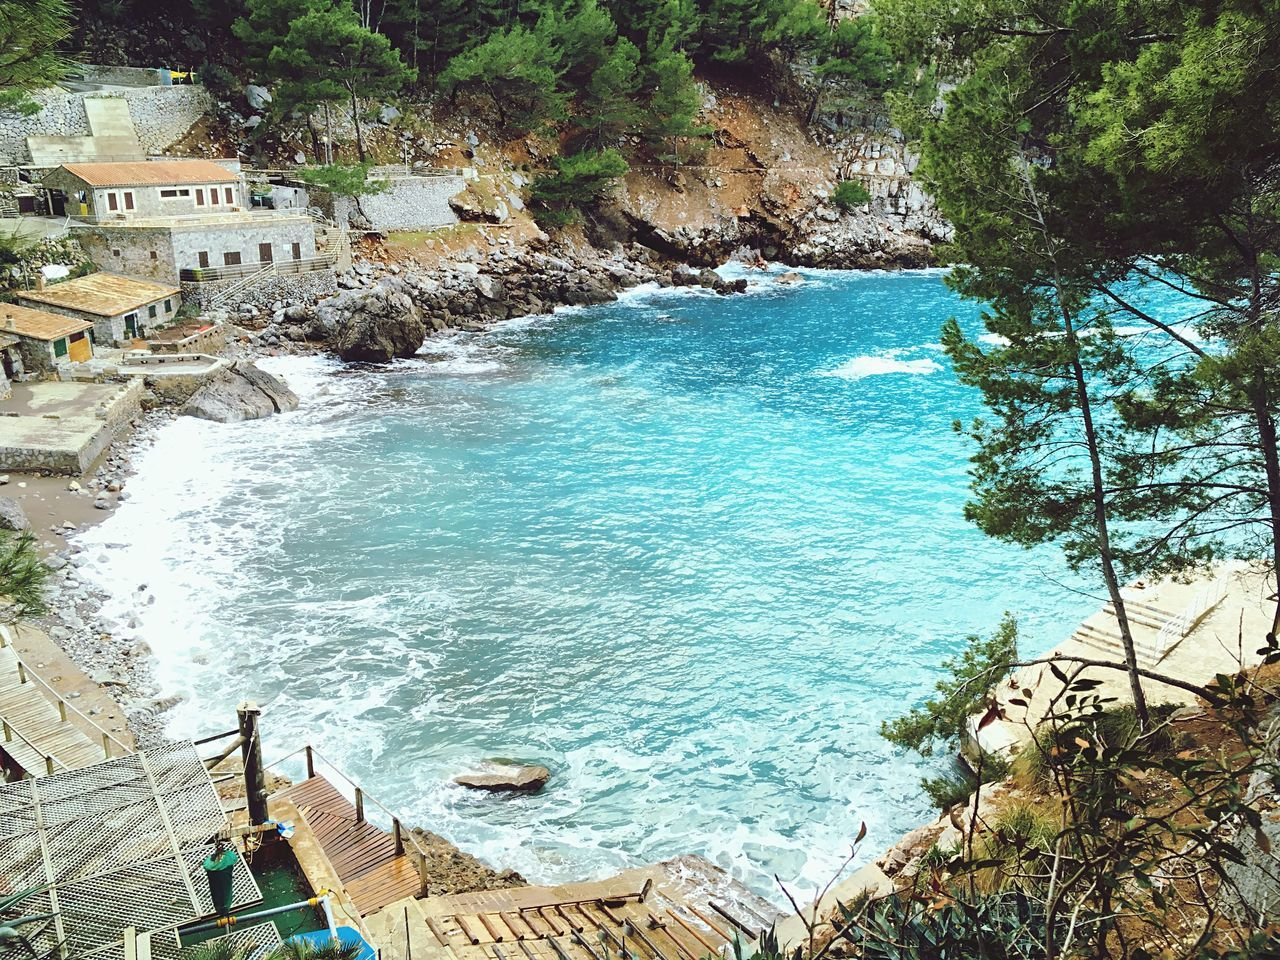 water, high angle view, built structure, architecture, day, nature, sea, building exterior, tree, plant, land, outdoors, beauty in nature, scenics - nature, incidental people, rock, beach, solid, turquoise colored